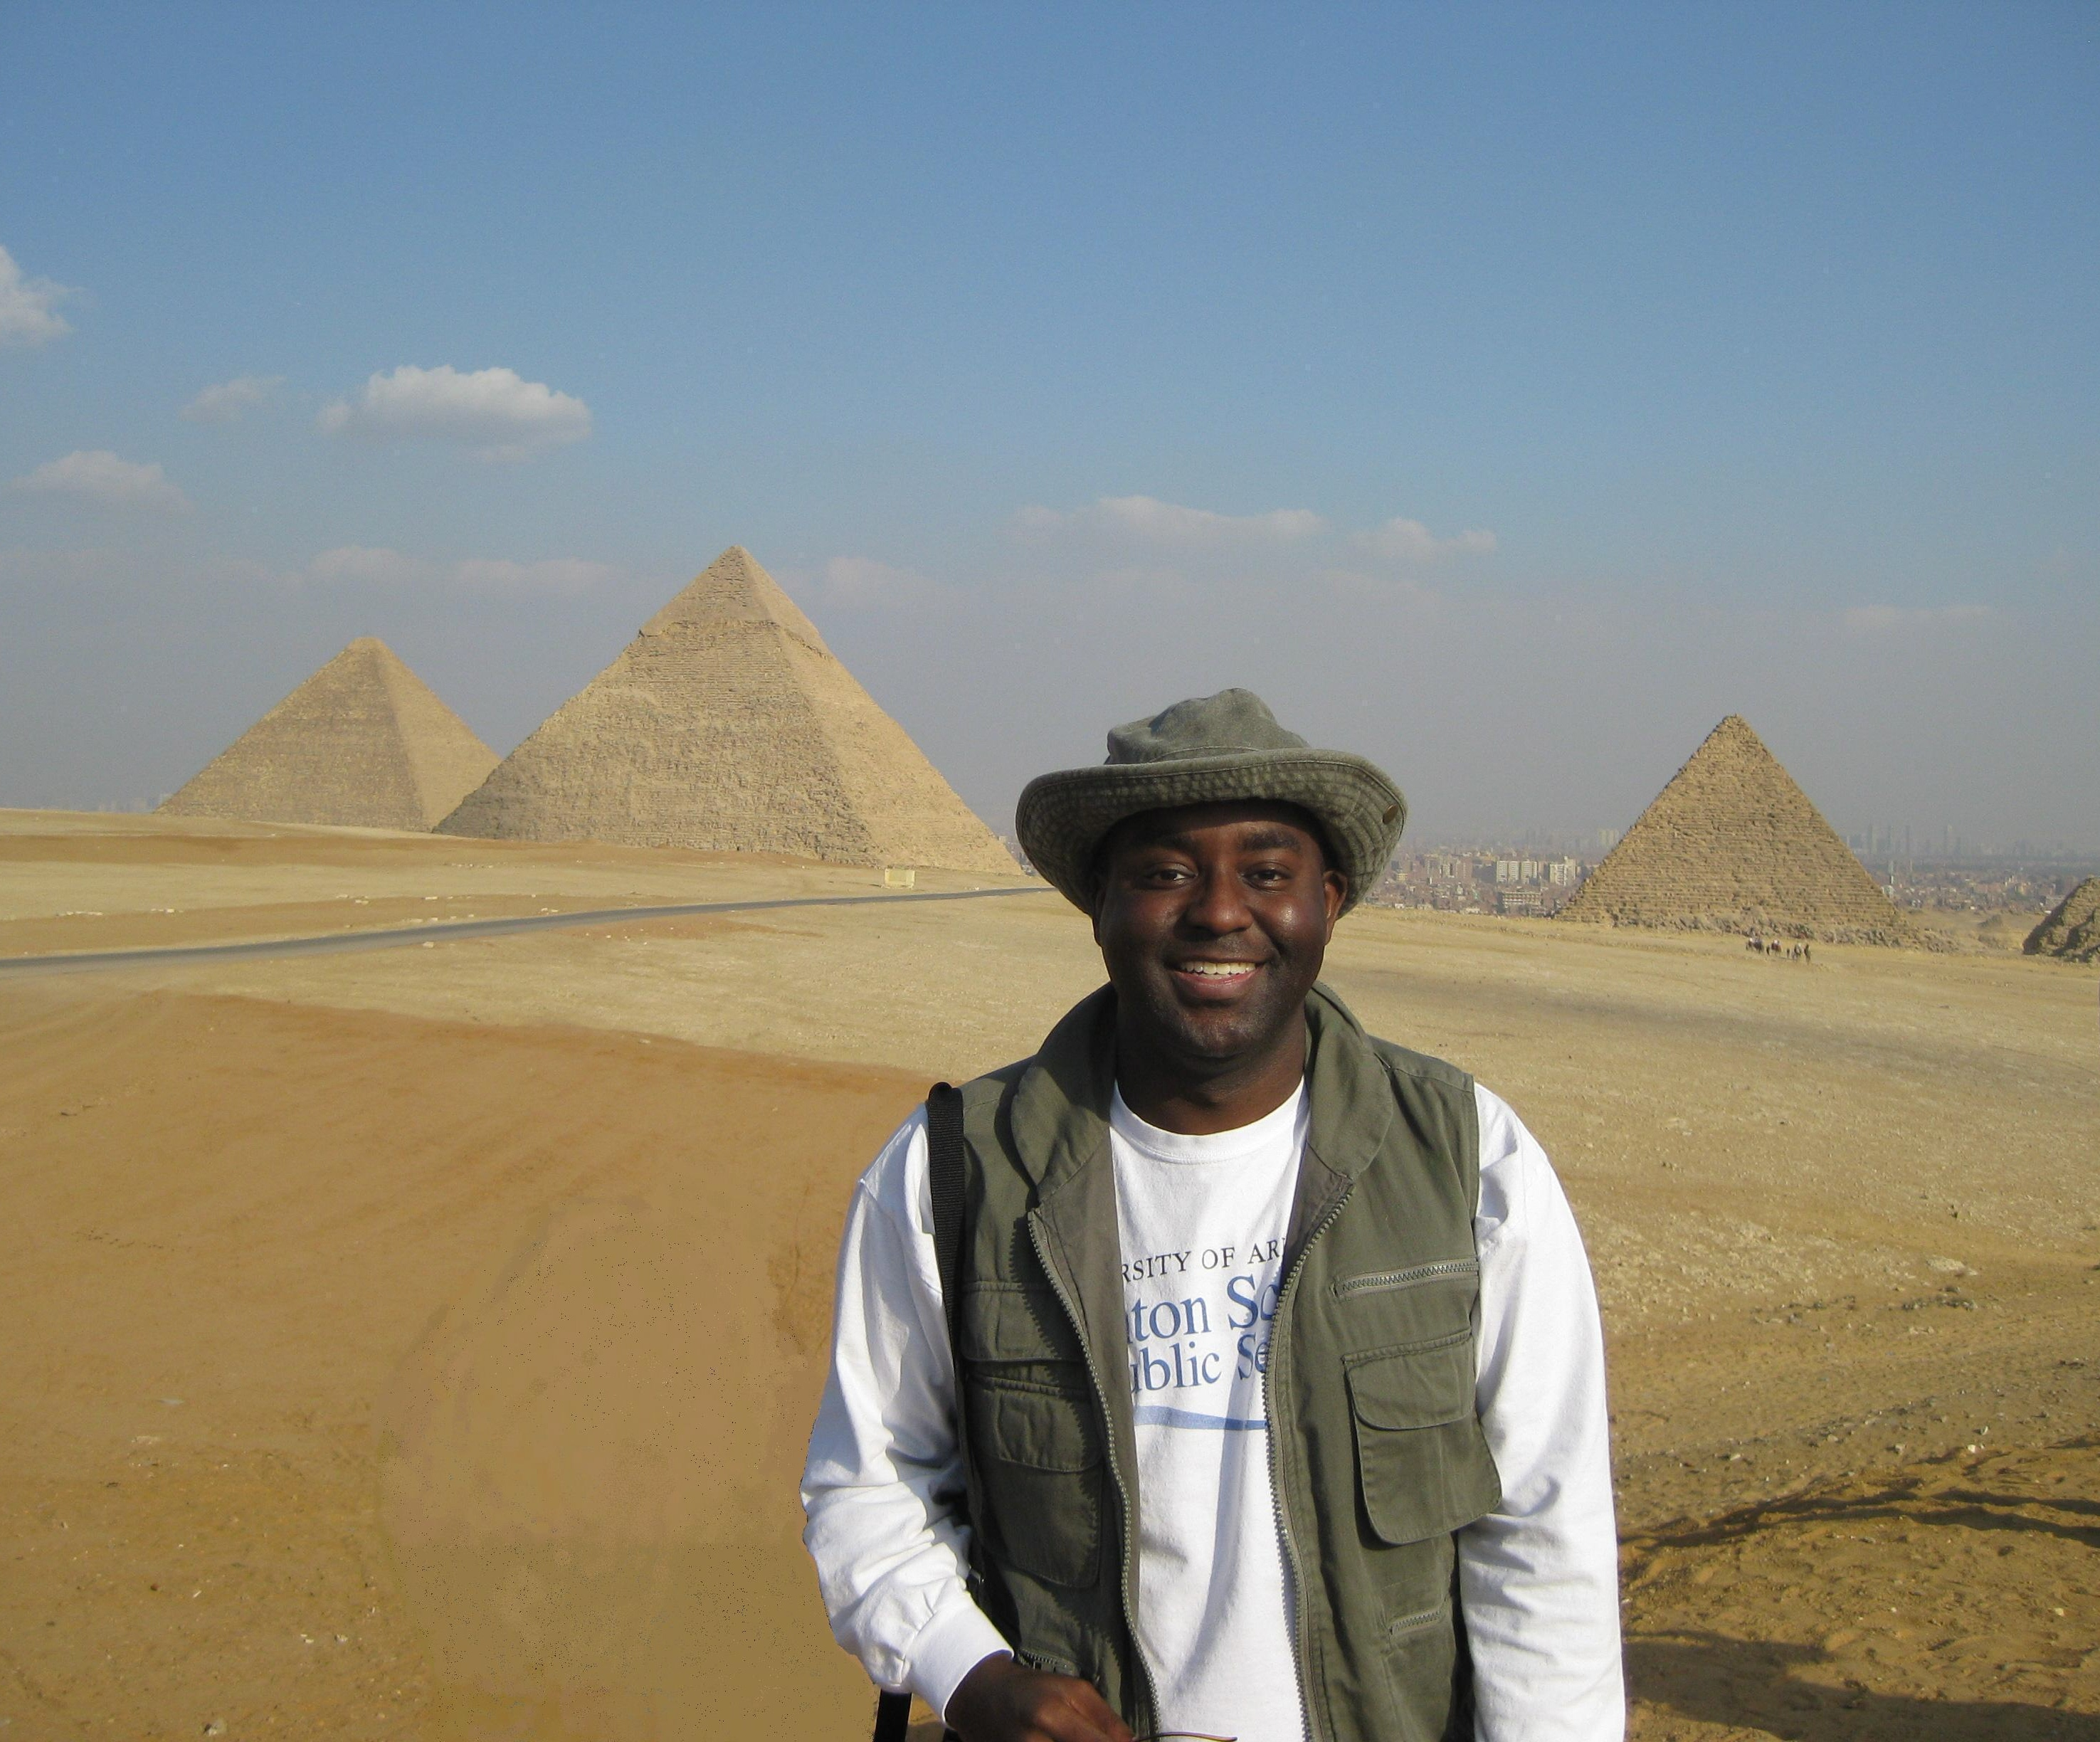 In front of the incredible Pyramids